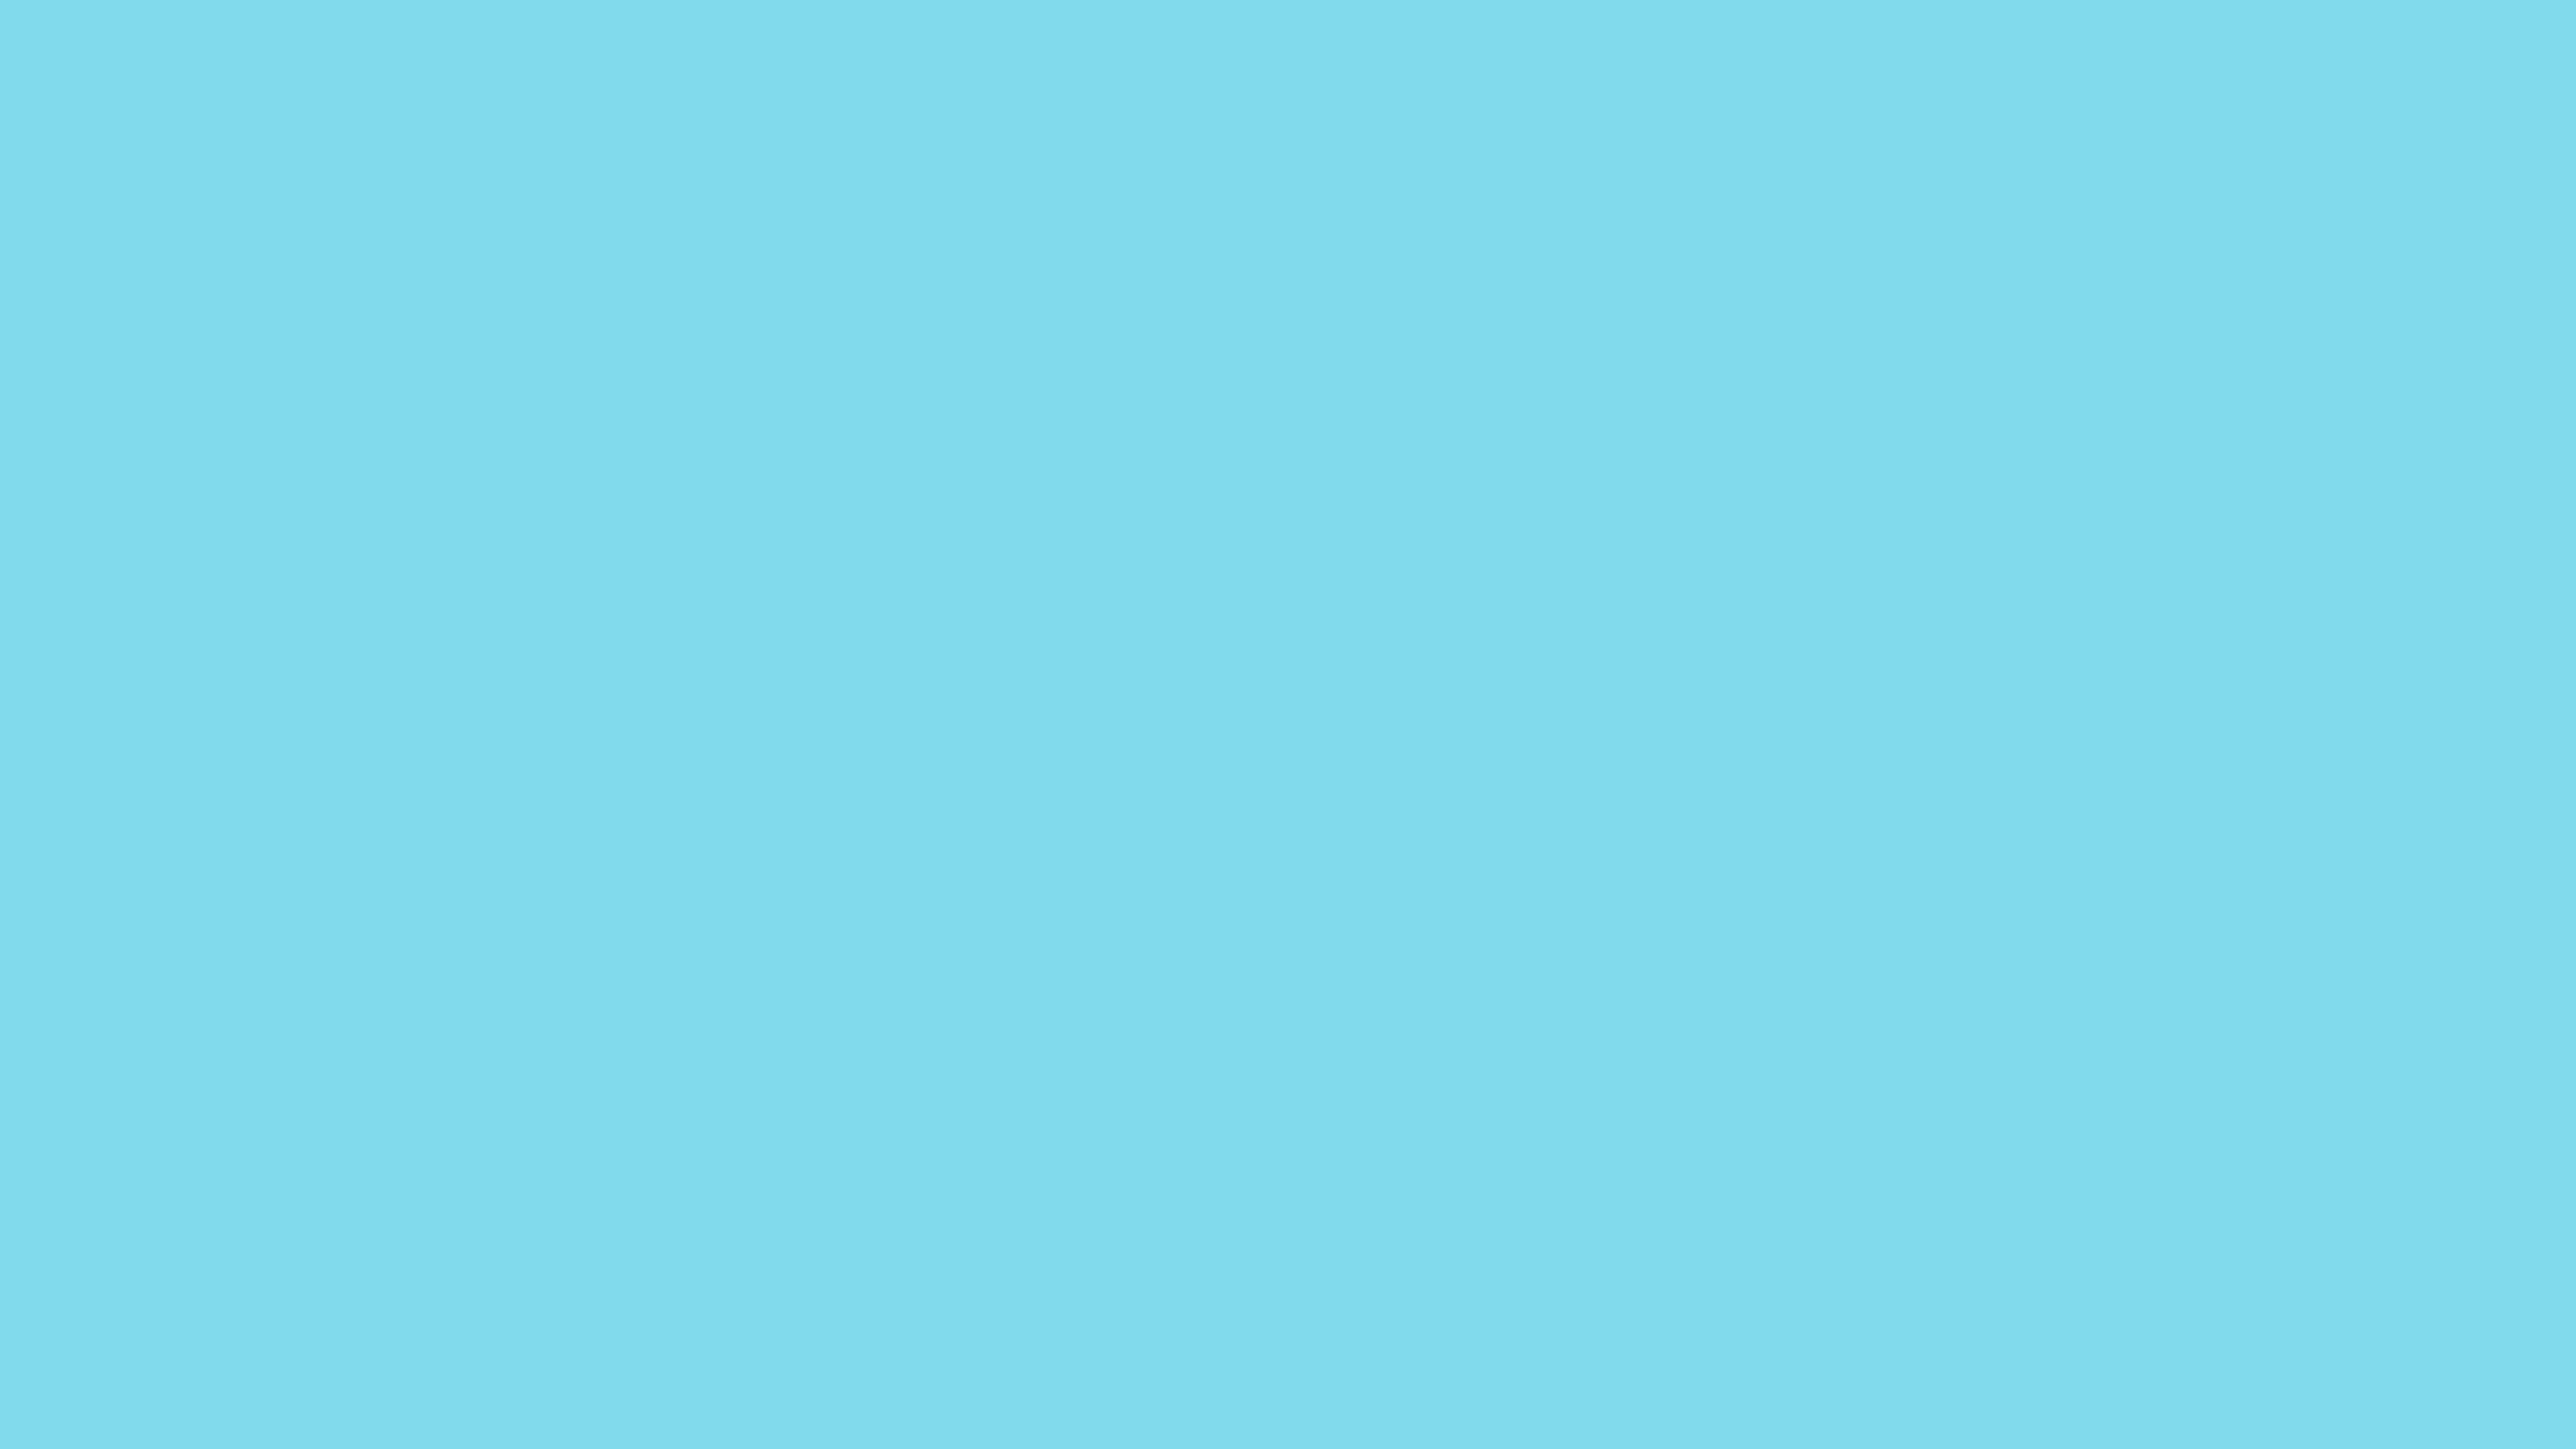 7680x4320 Medium Sky Blue Solid Color Background